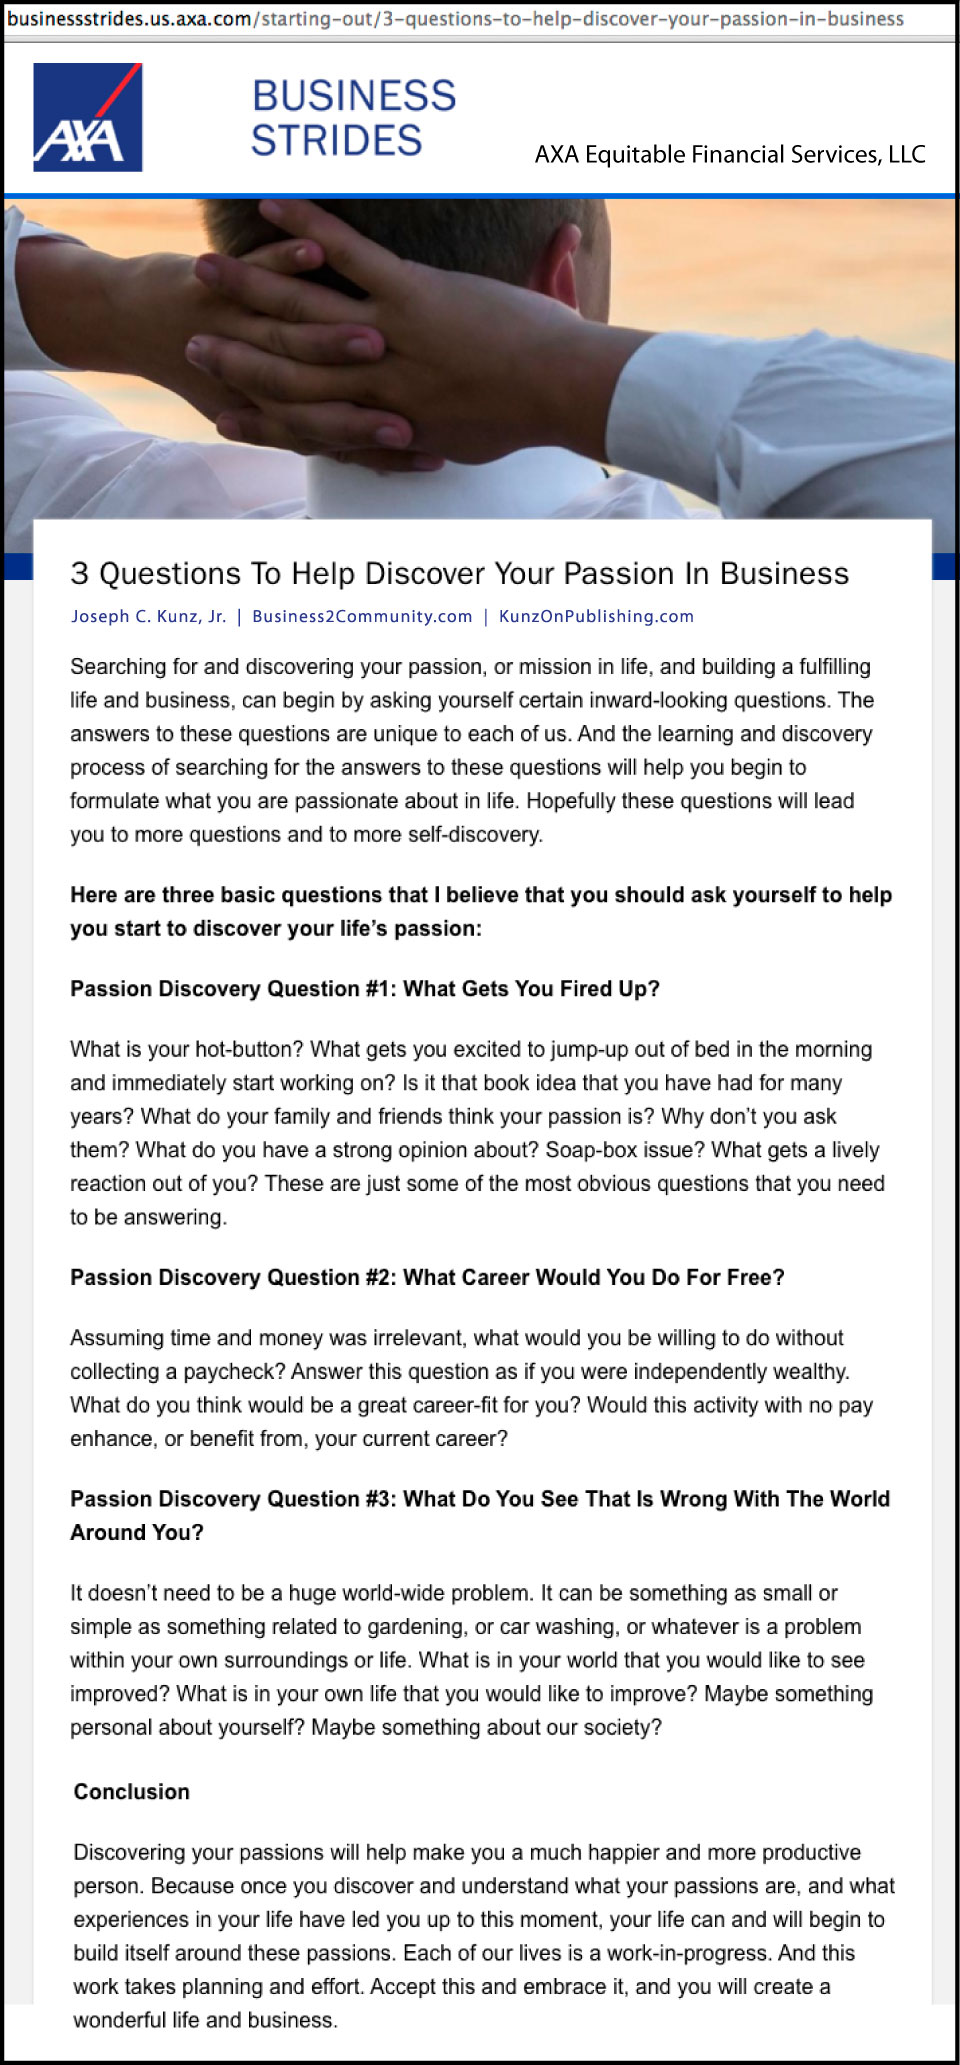 AXA - Business Strides - 3 Questions To Help You Discover Your Passion In Business, by Joseph C. Kunz, Jr.